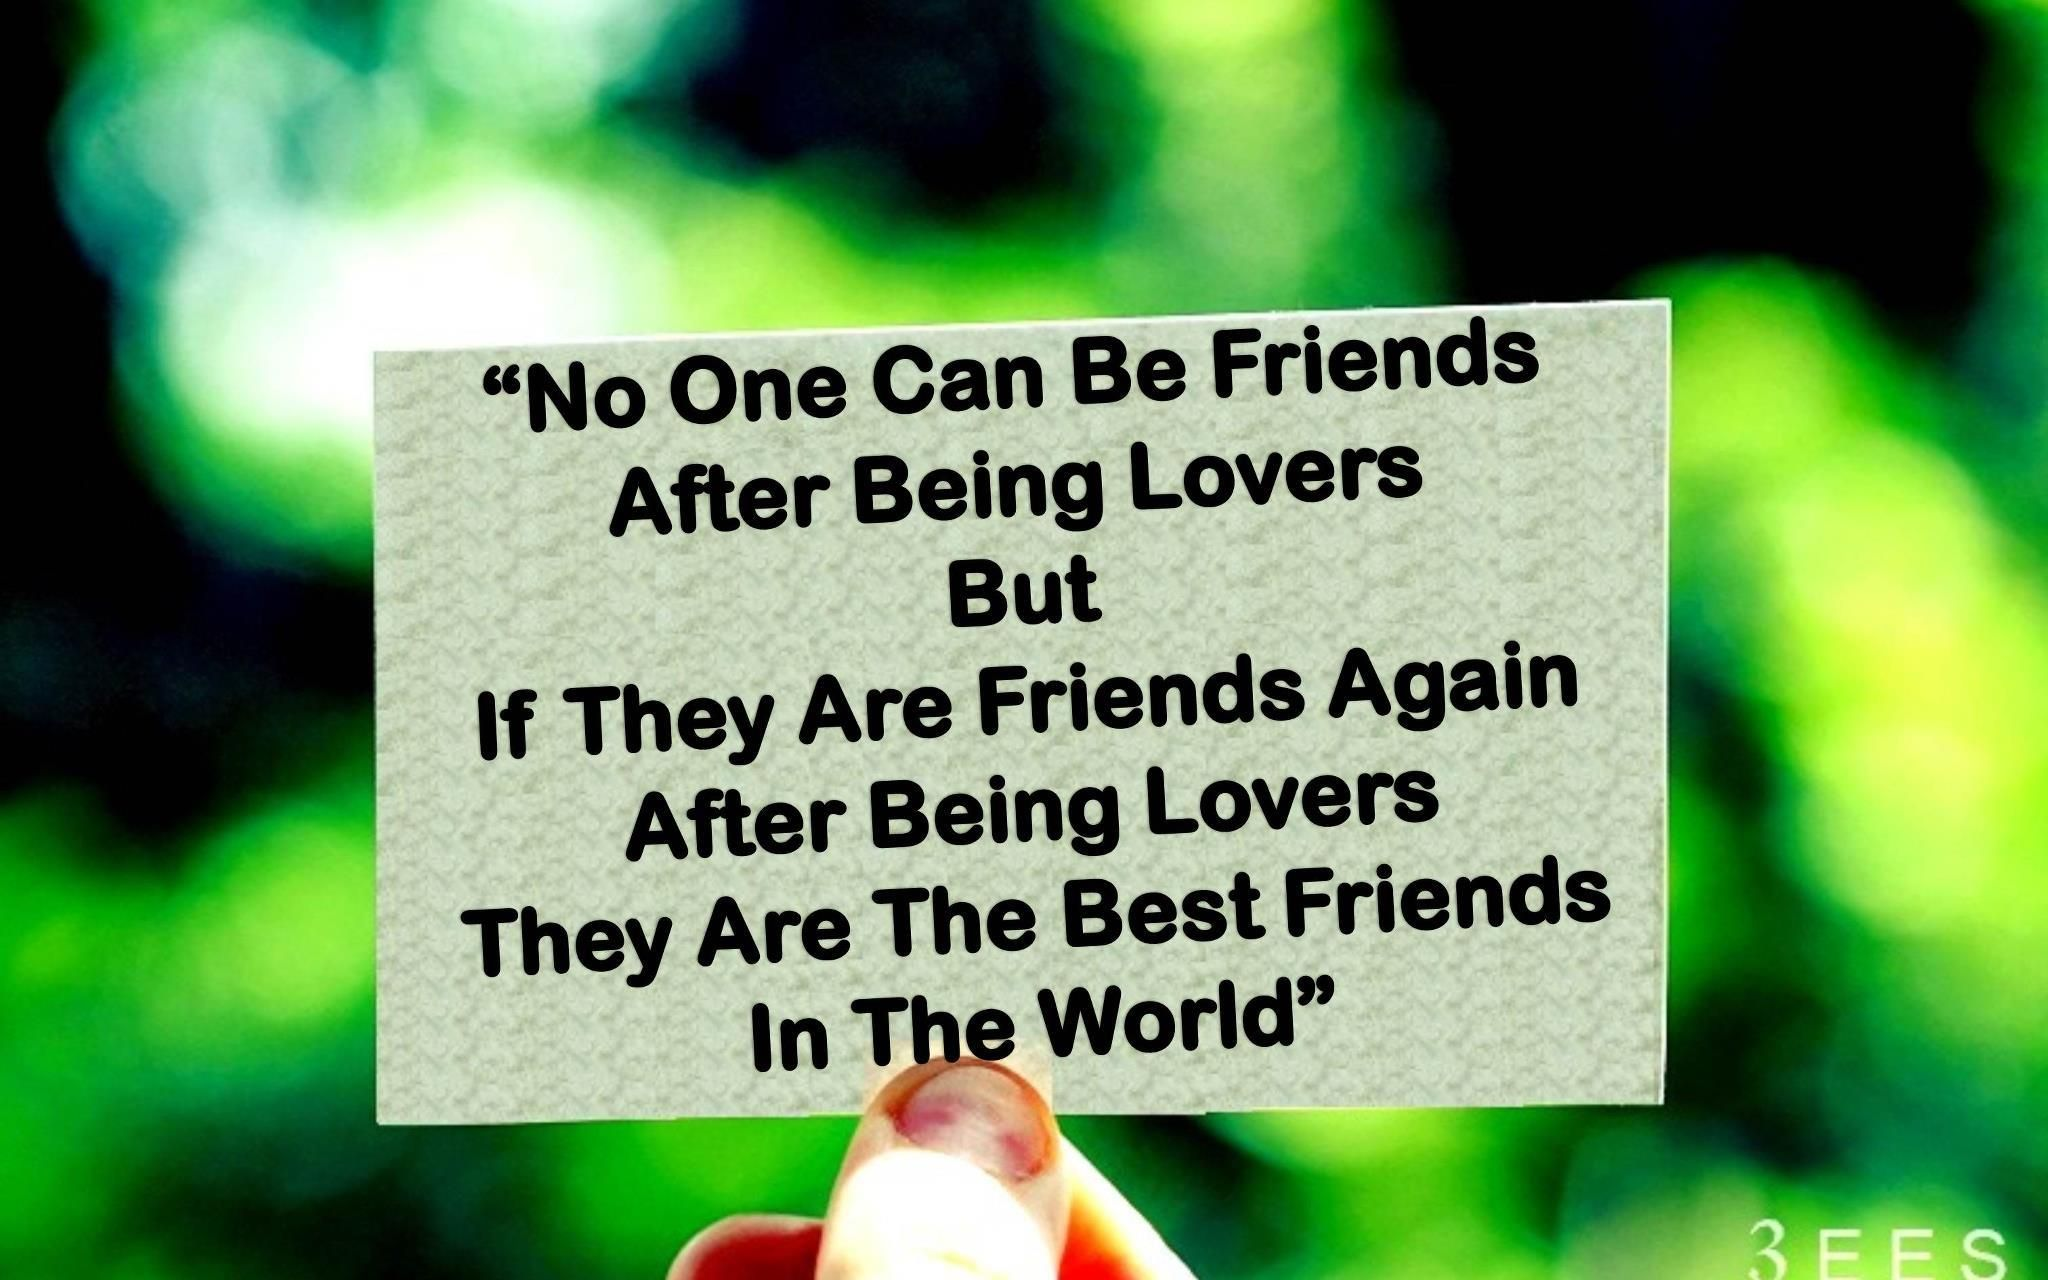 20 Cute Friendship Quotes With Images Friendship wallpapers 2048x1280